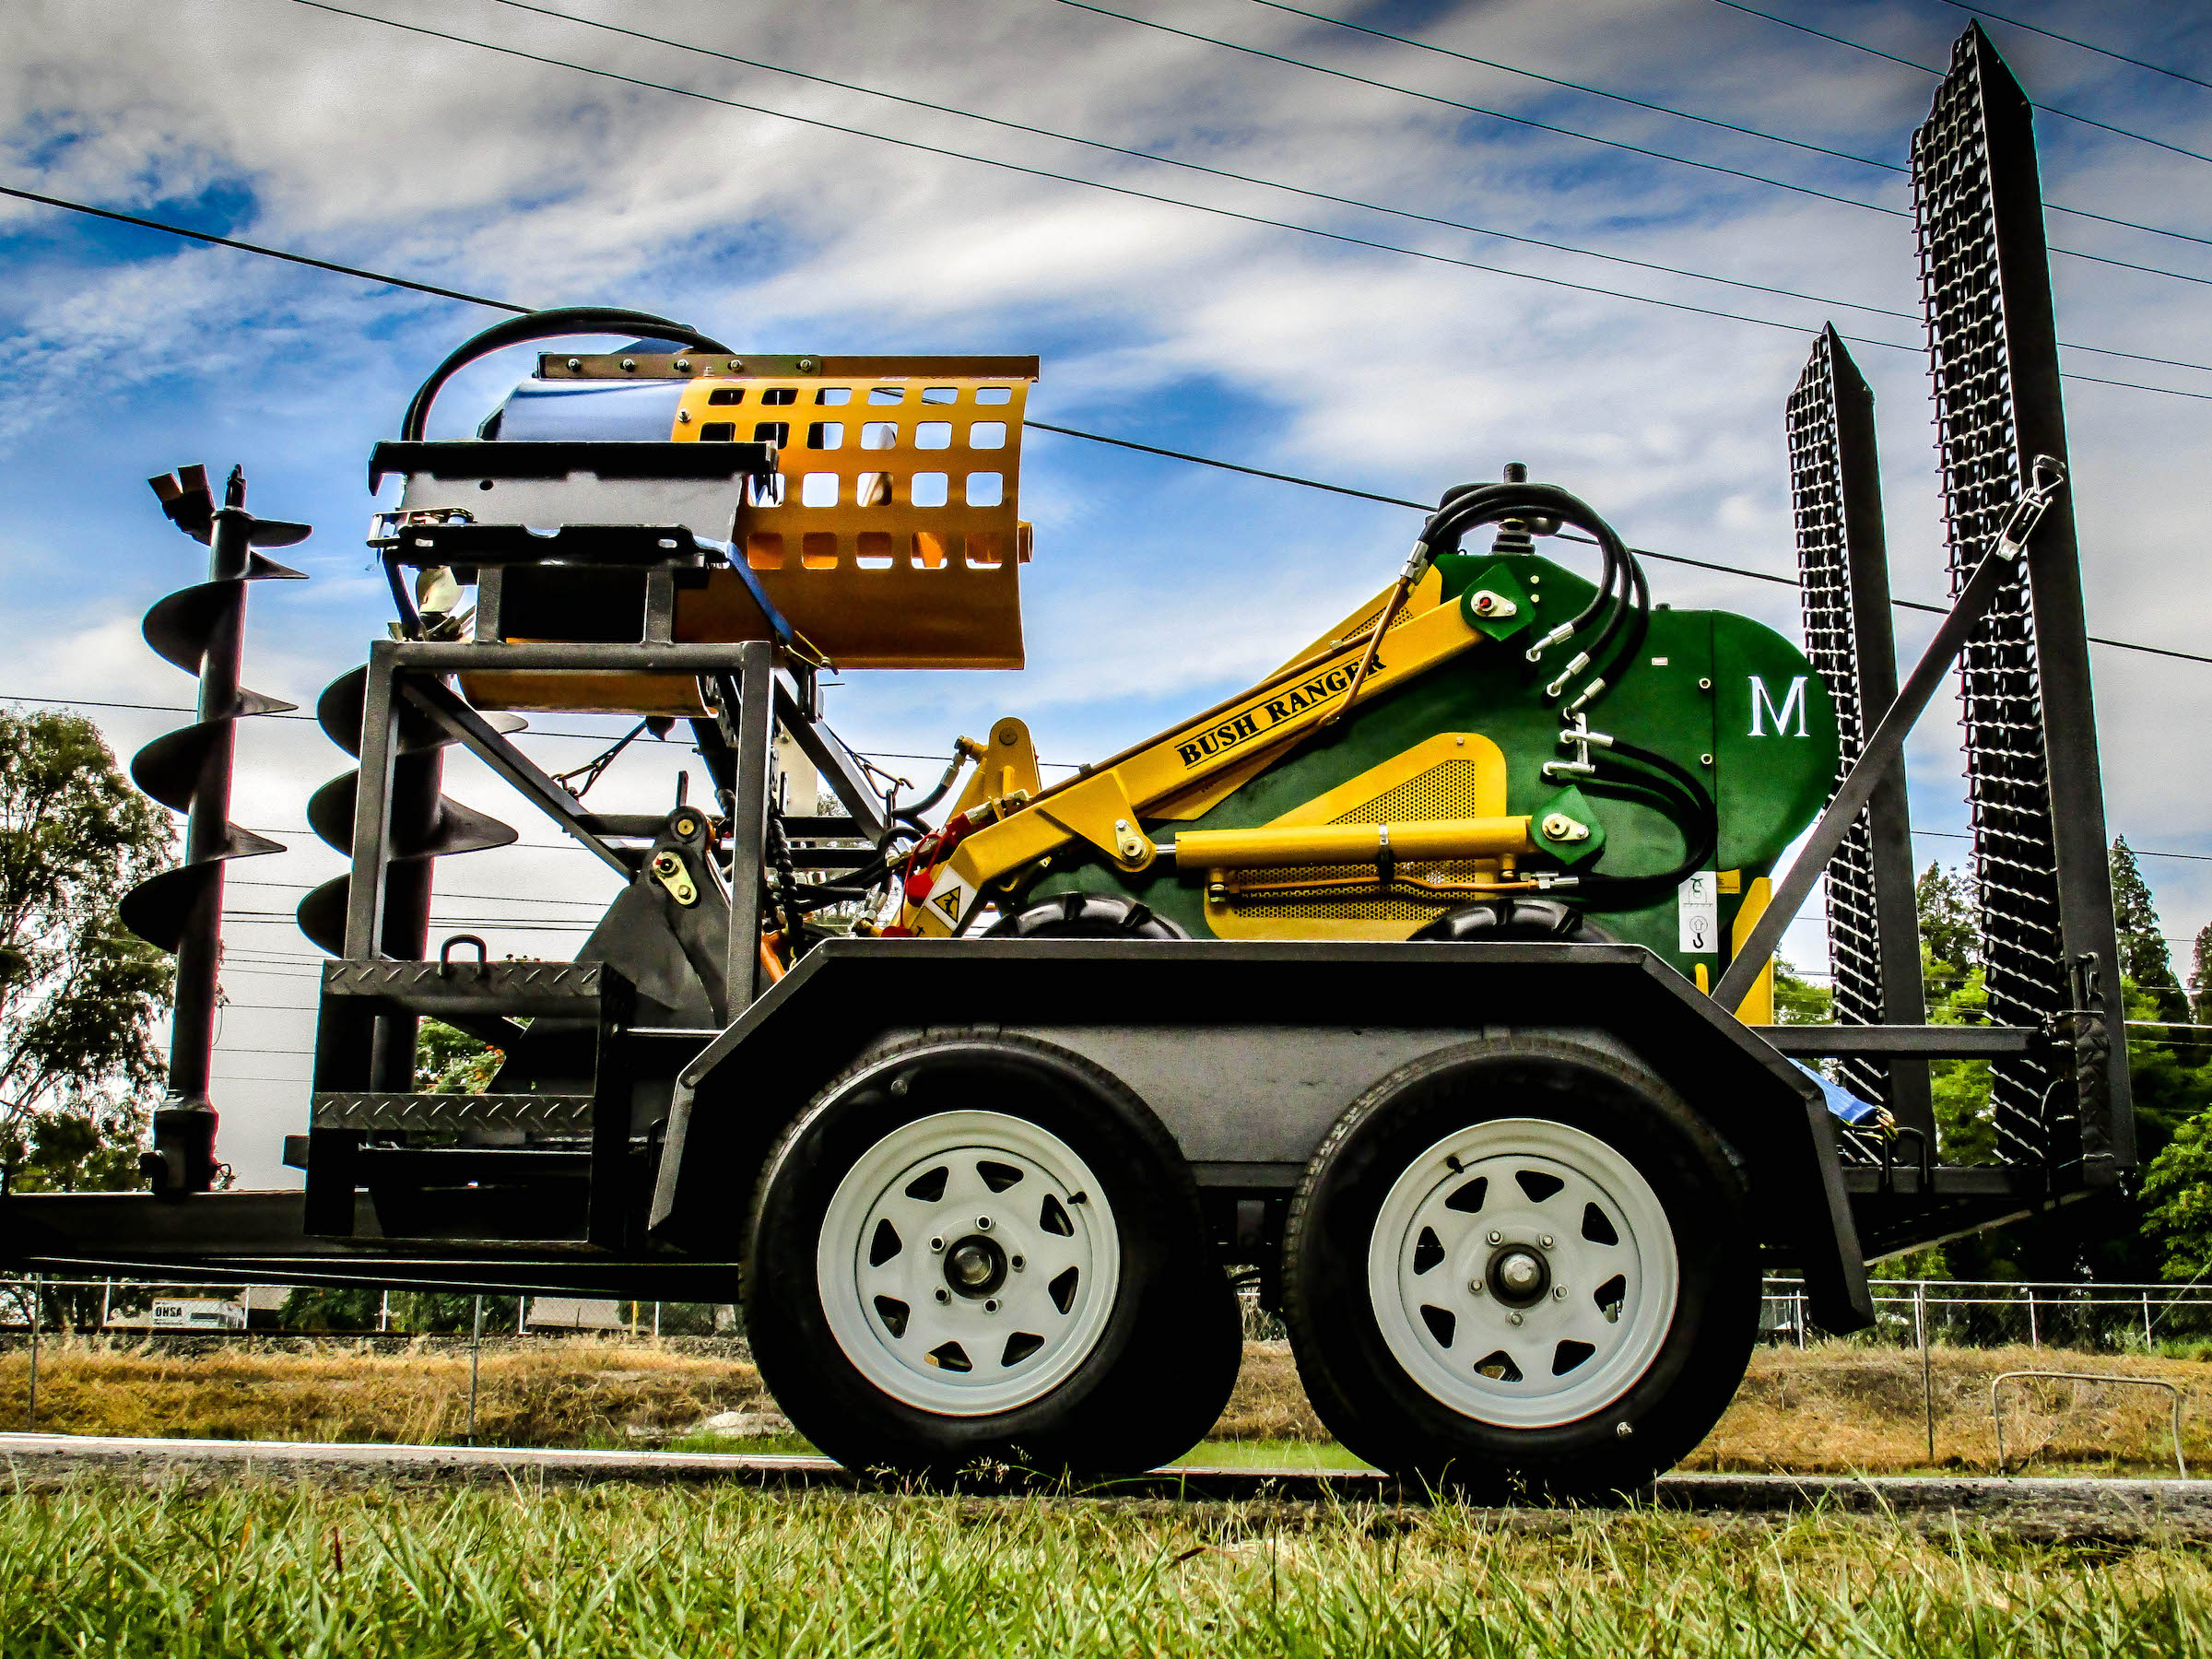 4 things you must know before ordering any plant trailer!